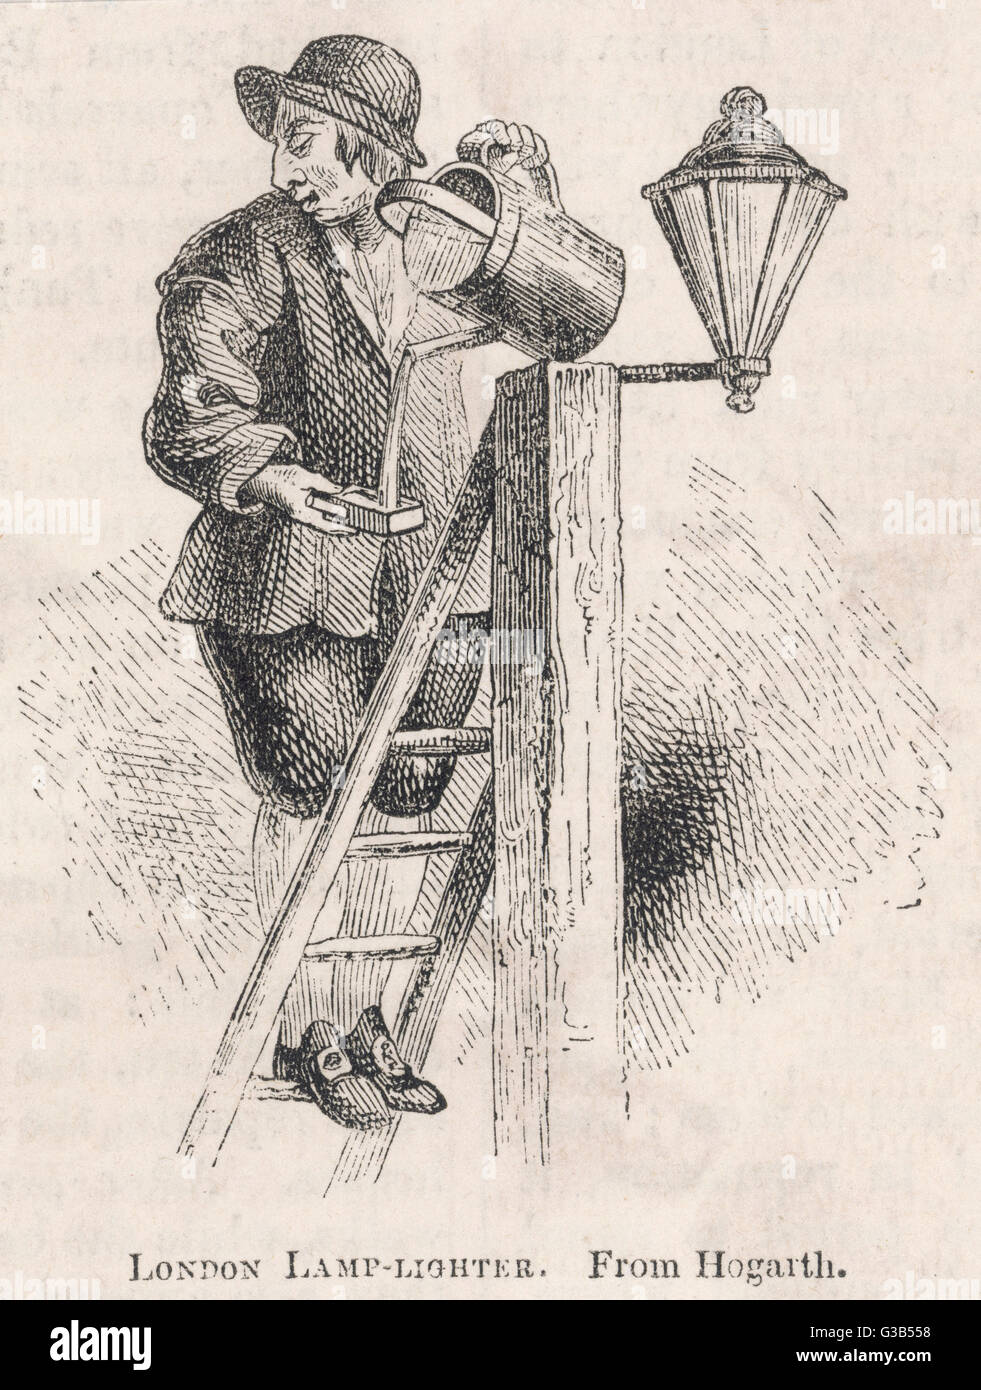 A London lamplighter climbs  his ladder to refill a lamp  with oil        Date: circa 1740 - Stock Image